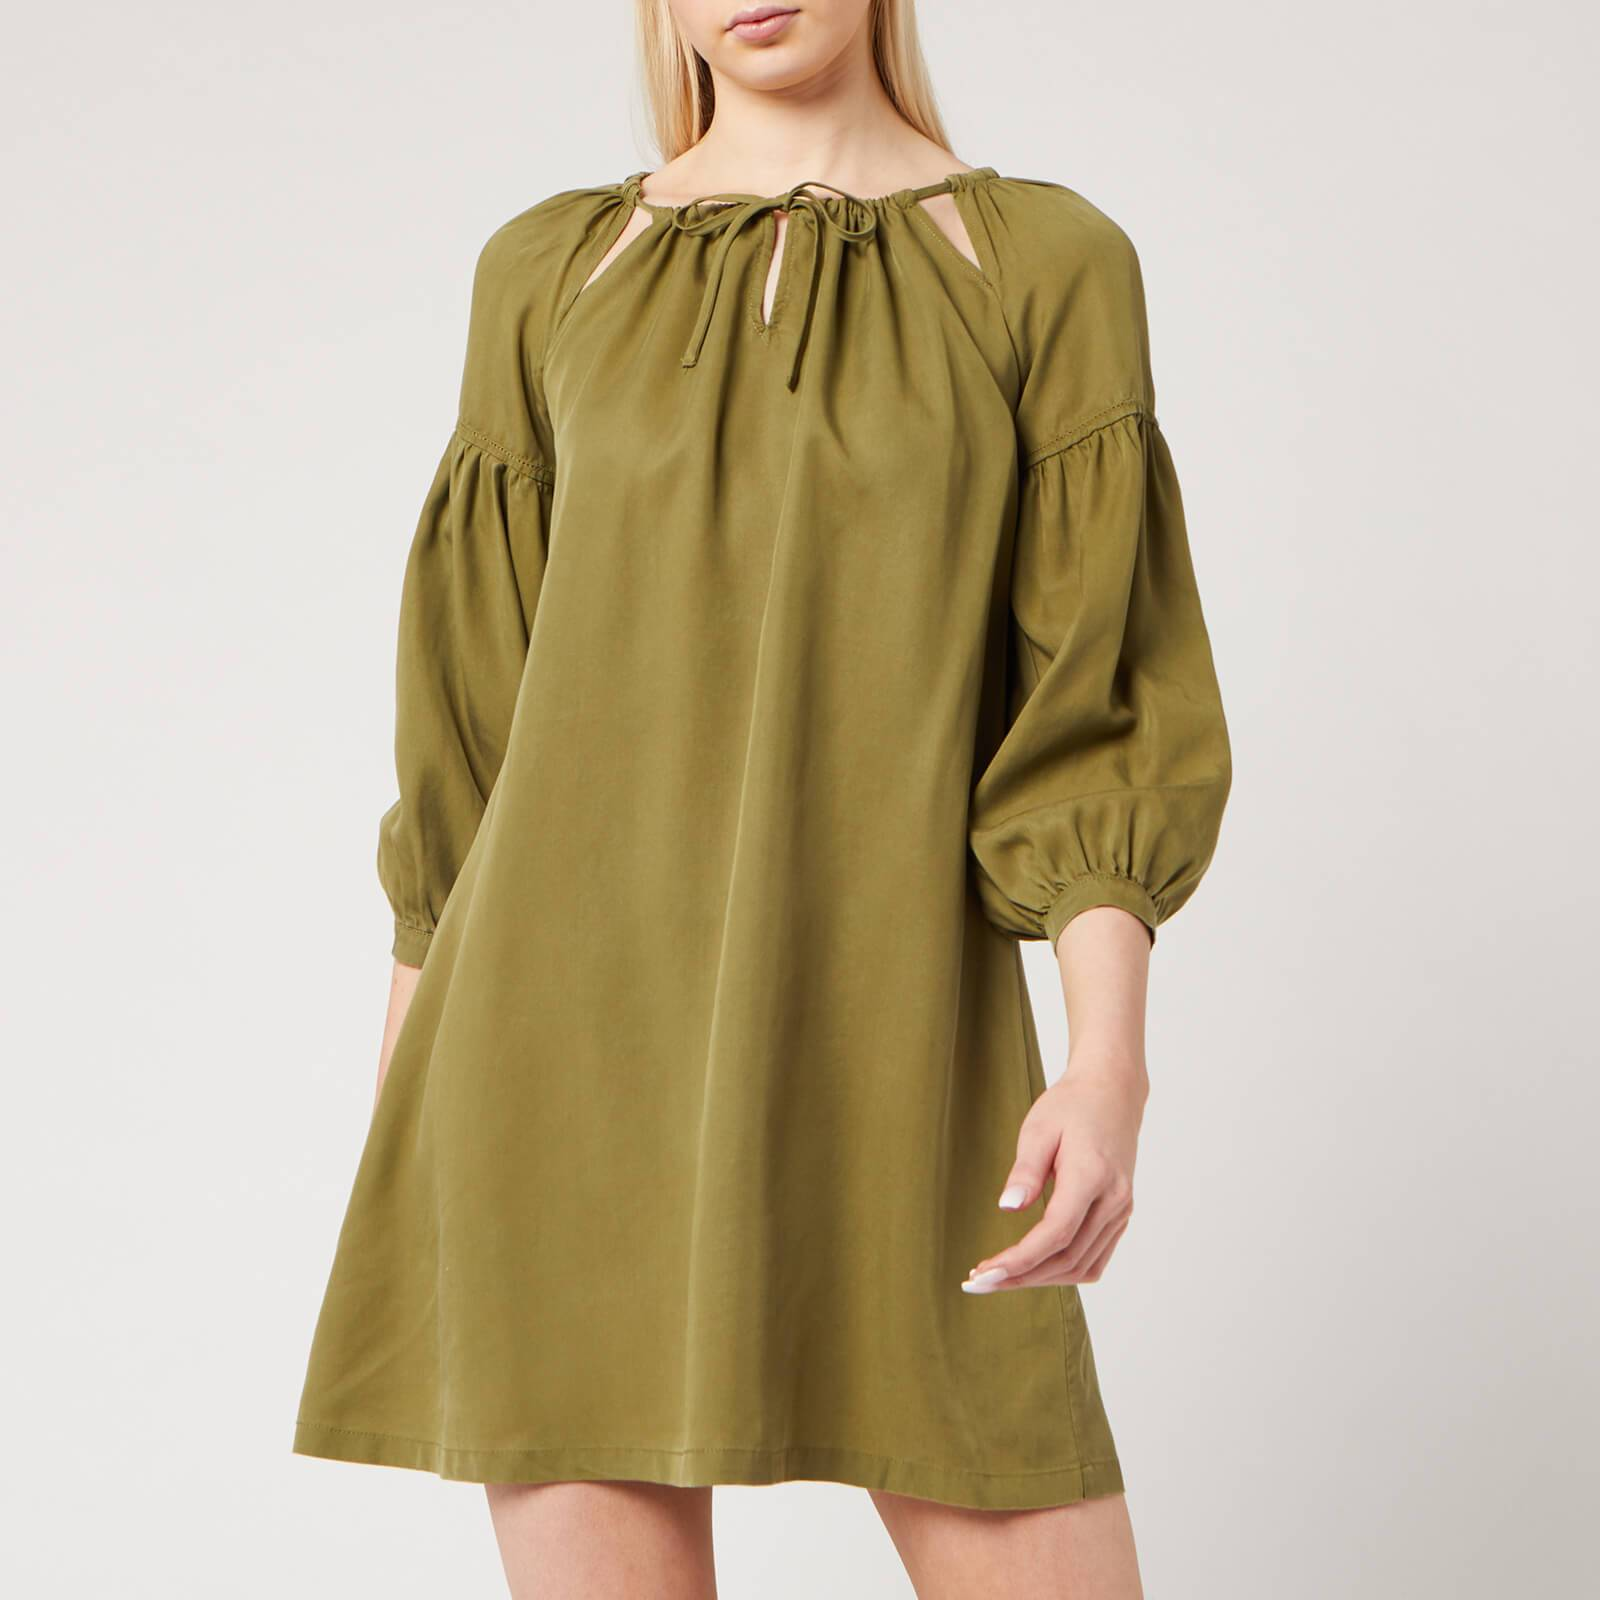 Superdry Women's Arizona Peek A Boo Dress - Capulet Olive - UK 16